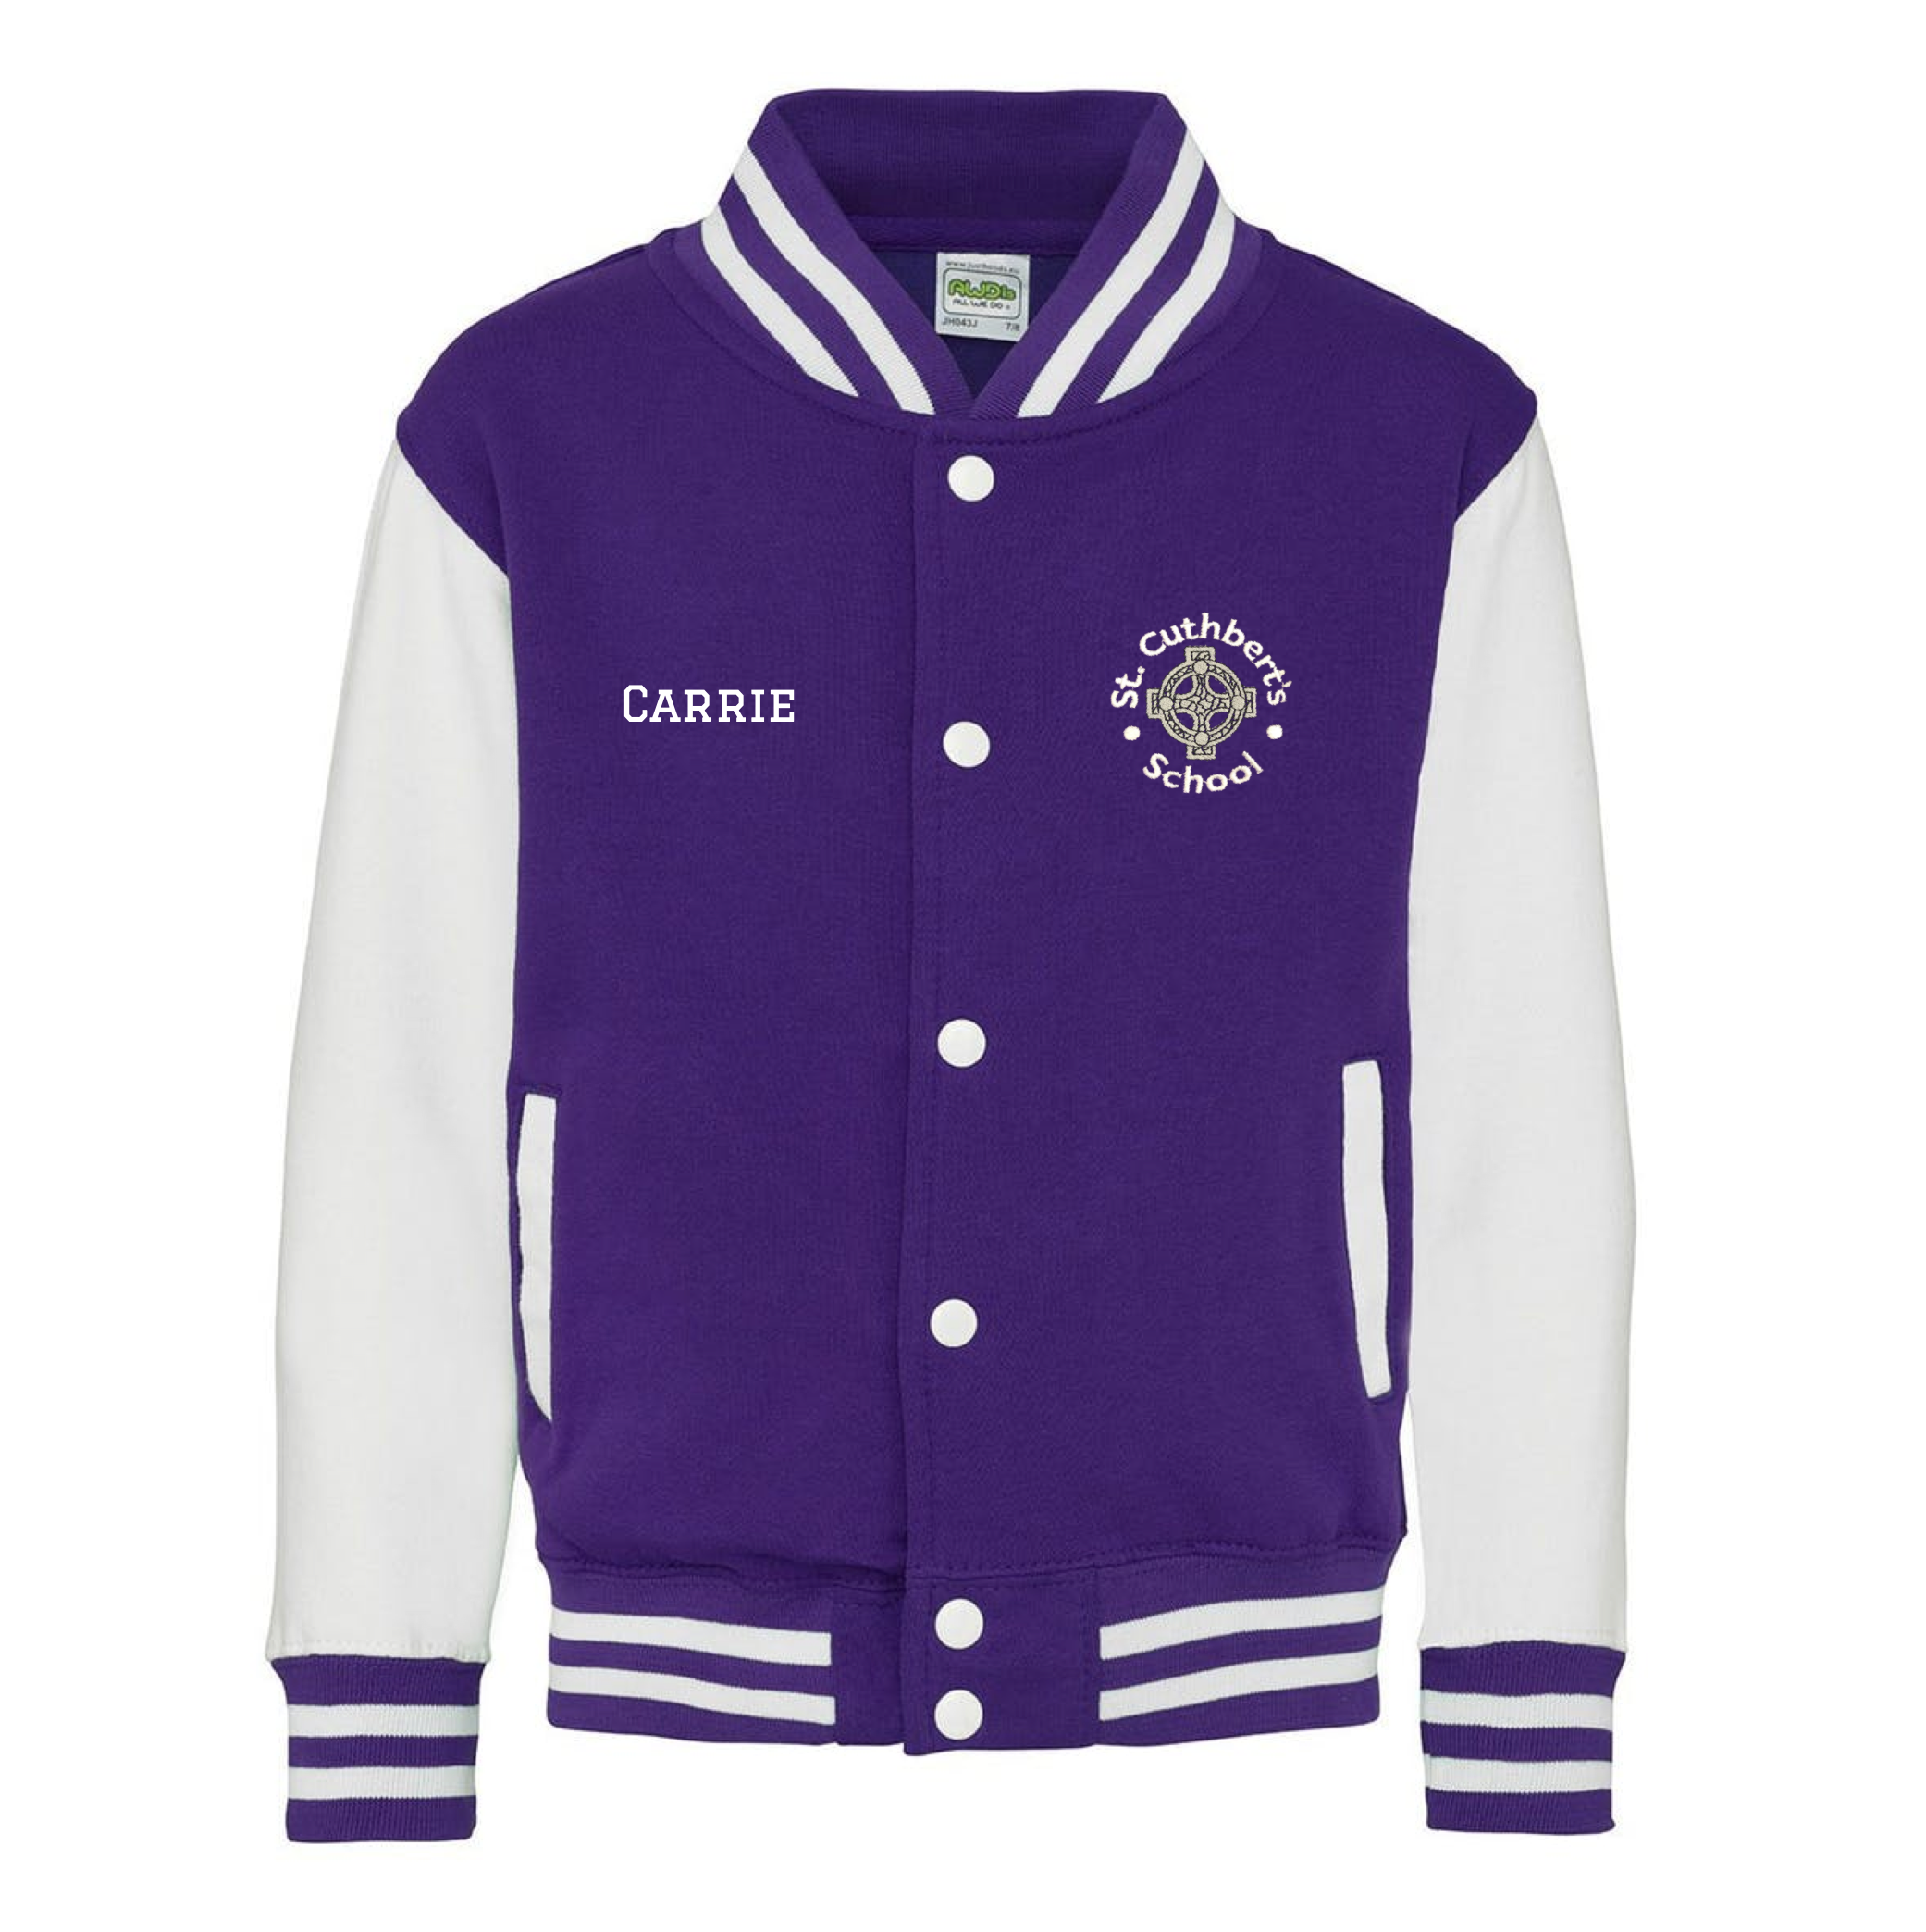 EXAMPLE St Cuthbert's Leavers Varsity Jacket